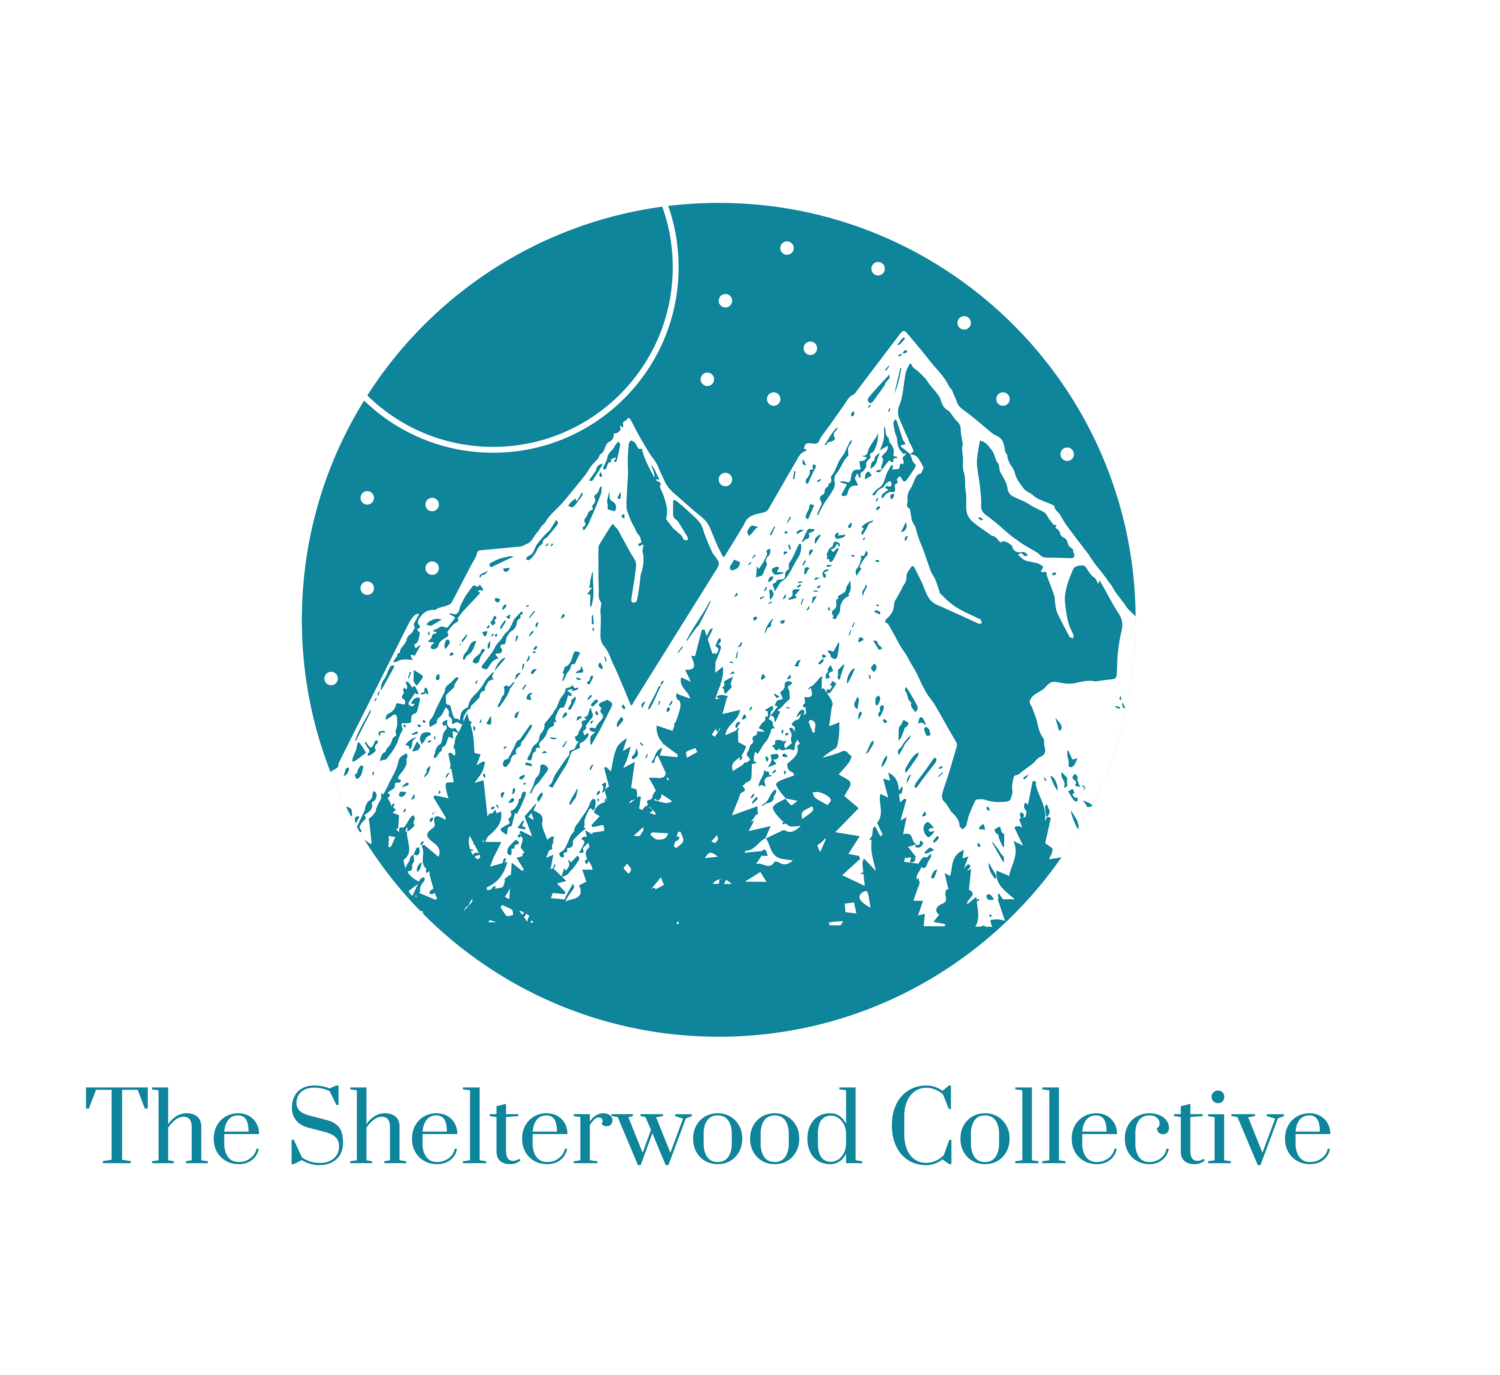 The Shelterwood Collective